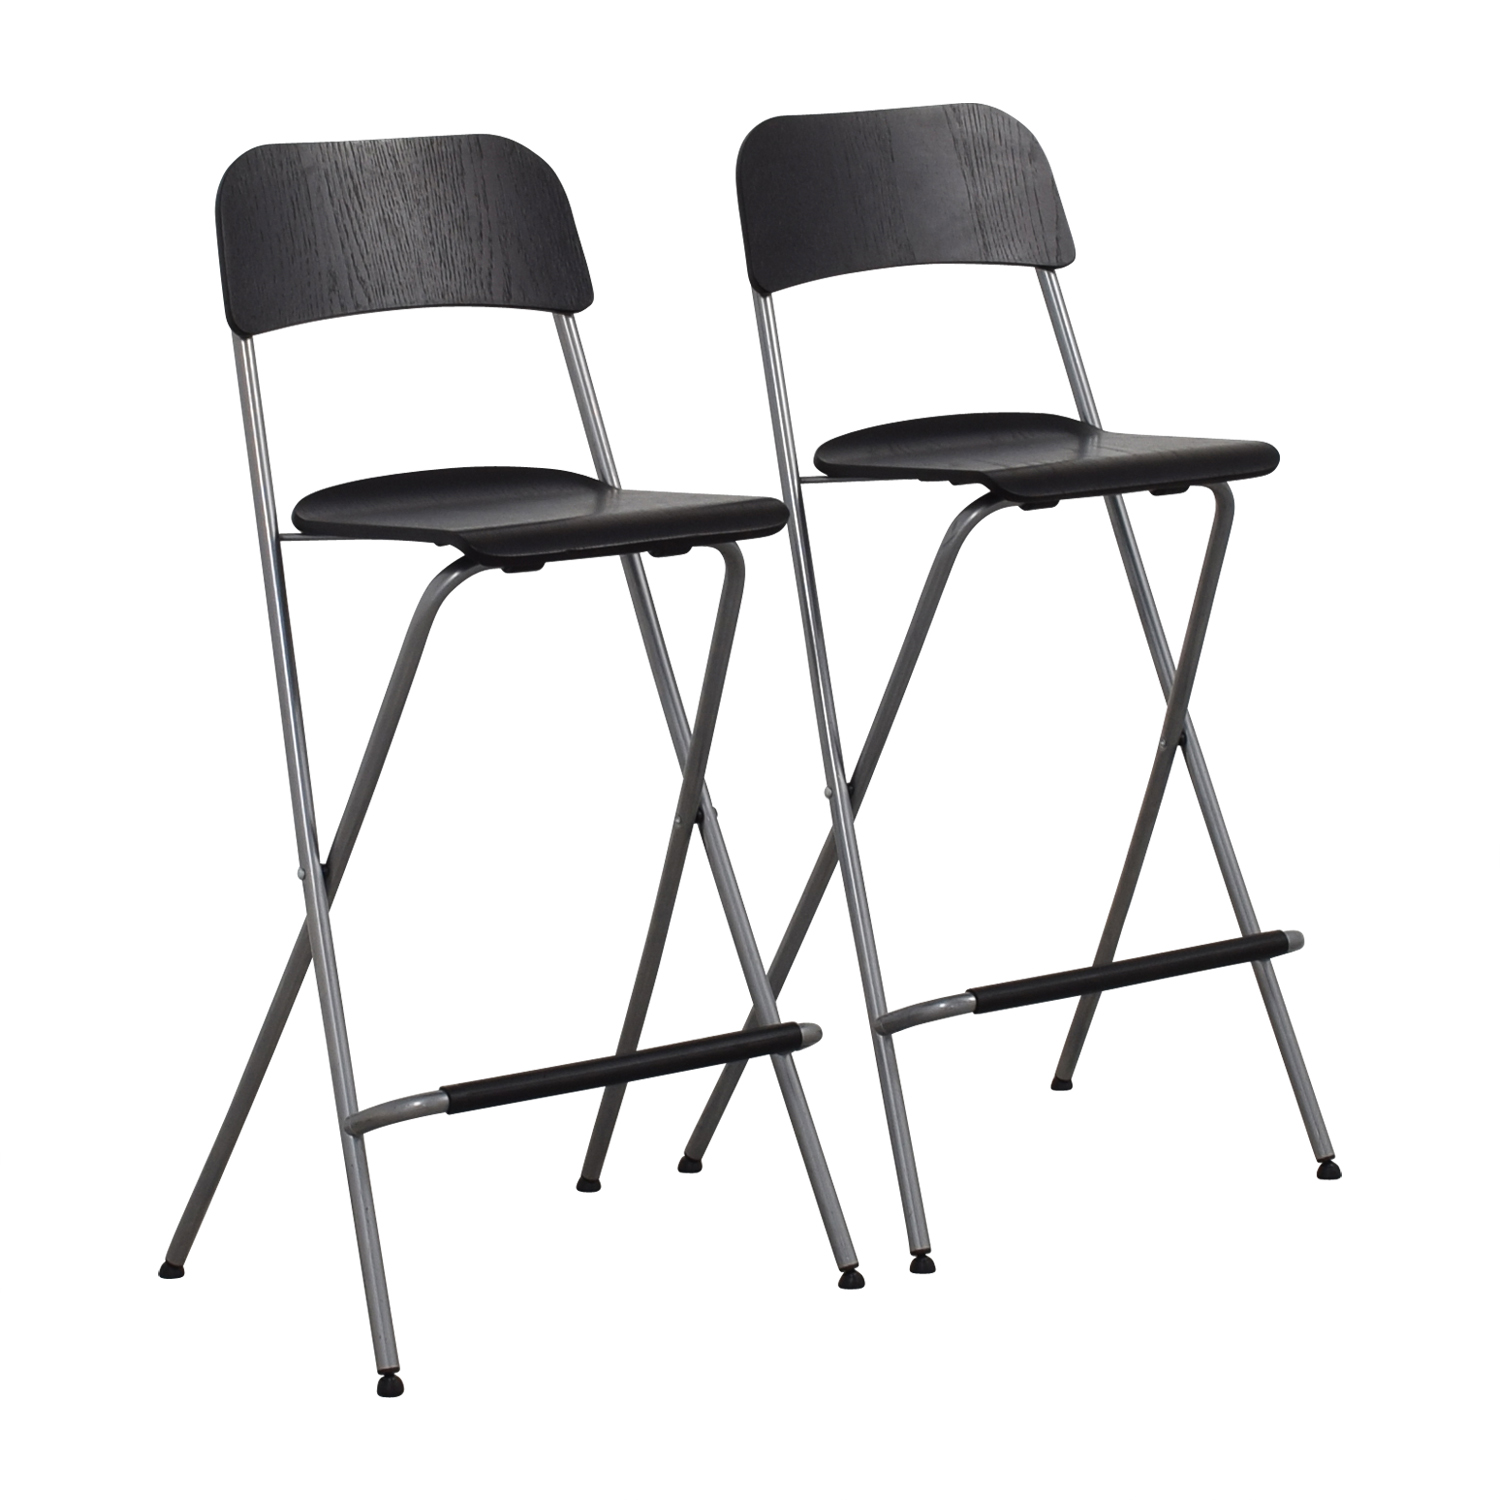 Unique Used Folding Chairs For Sale Rtty1 Com Rtty1 Com